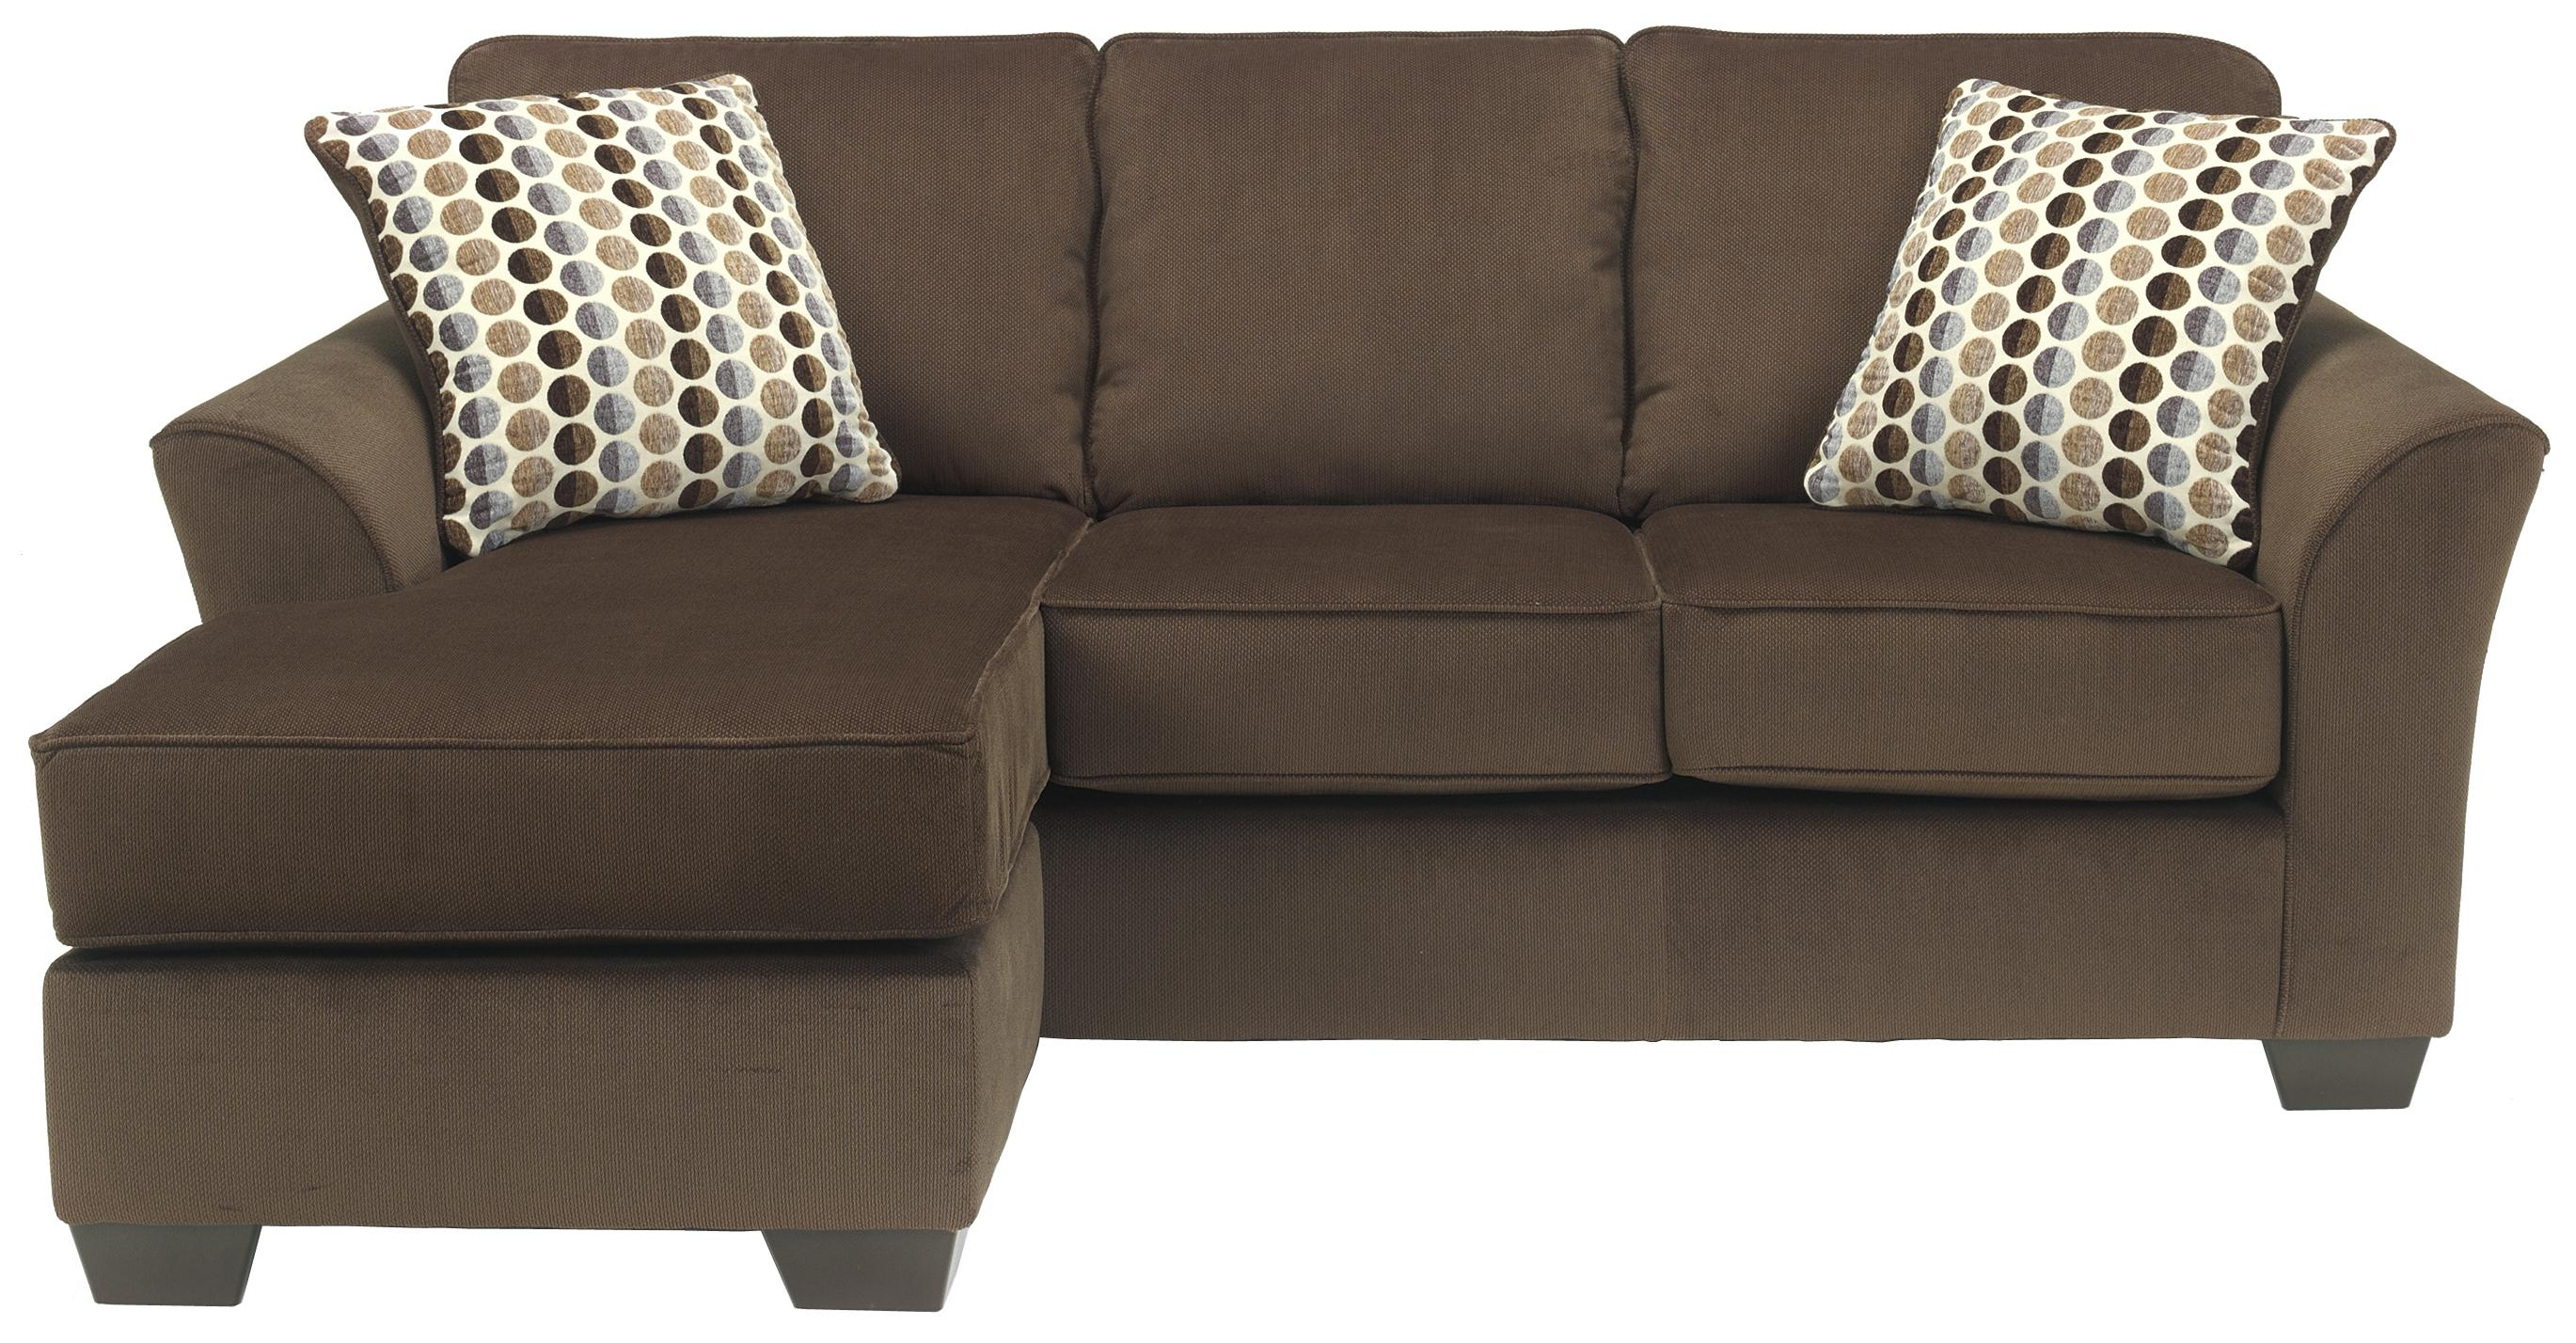 ashley furniture geordie cafe 2350018 contemporary sofa